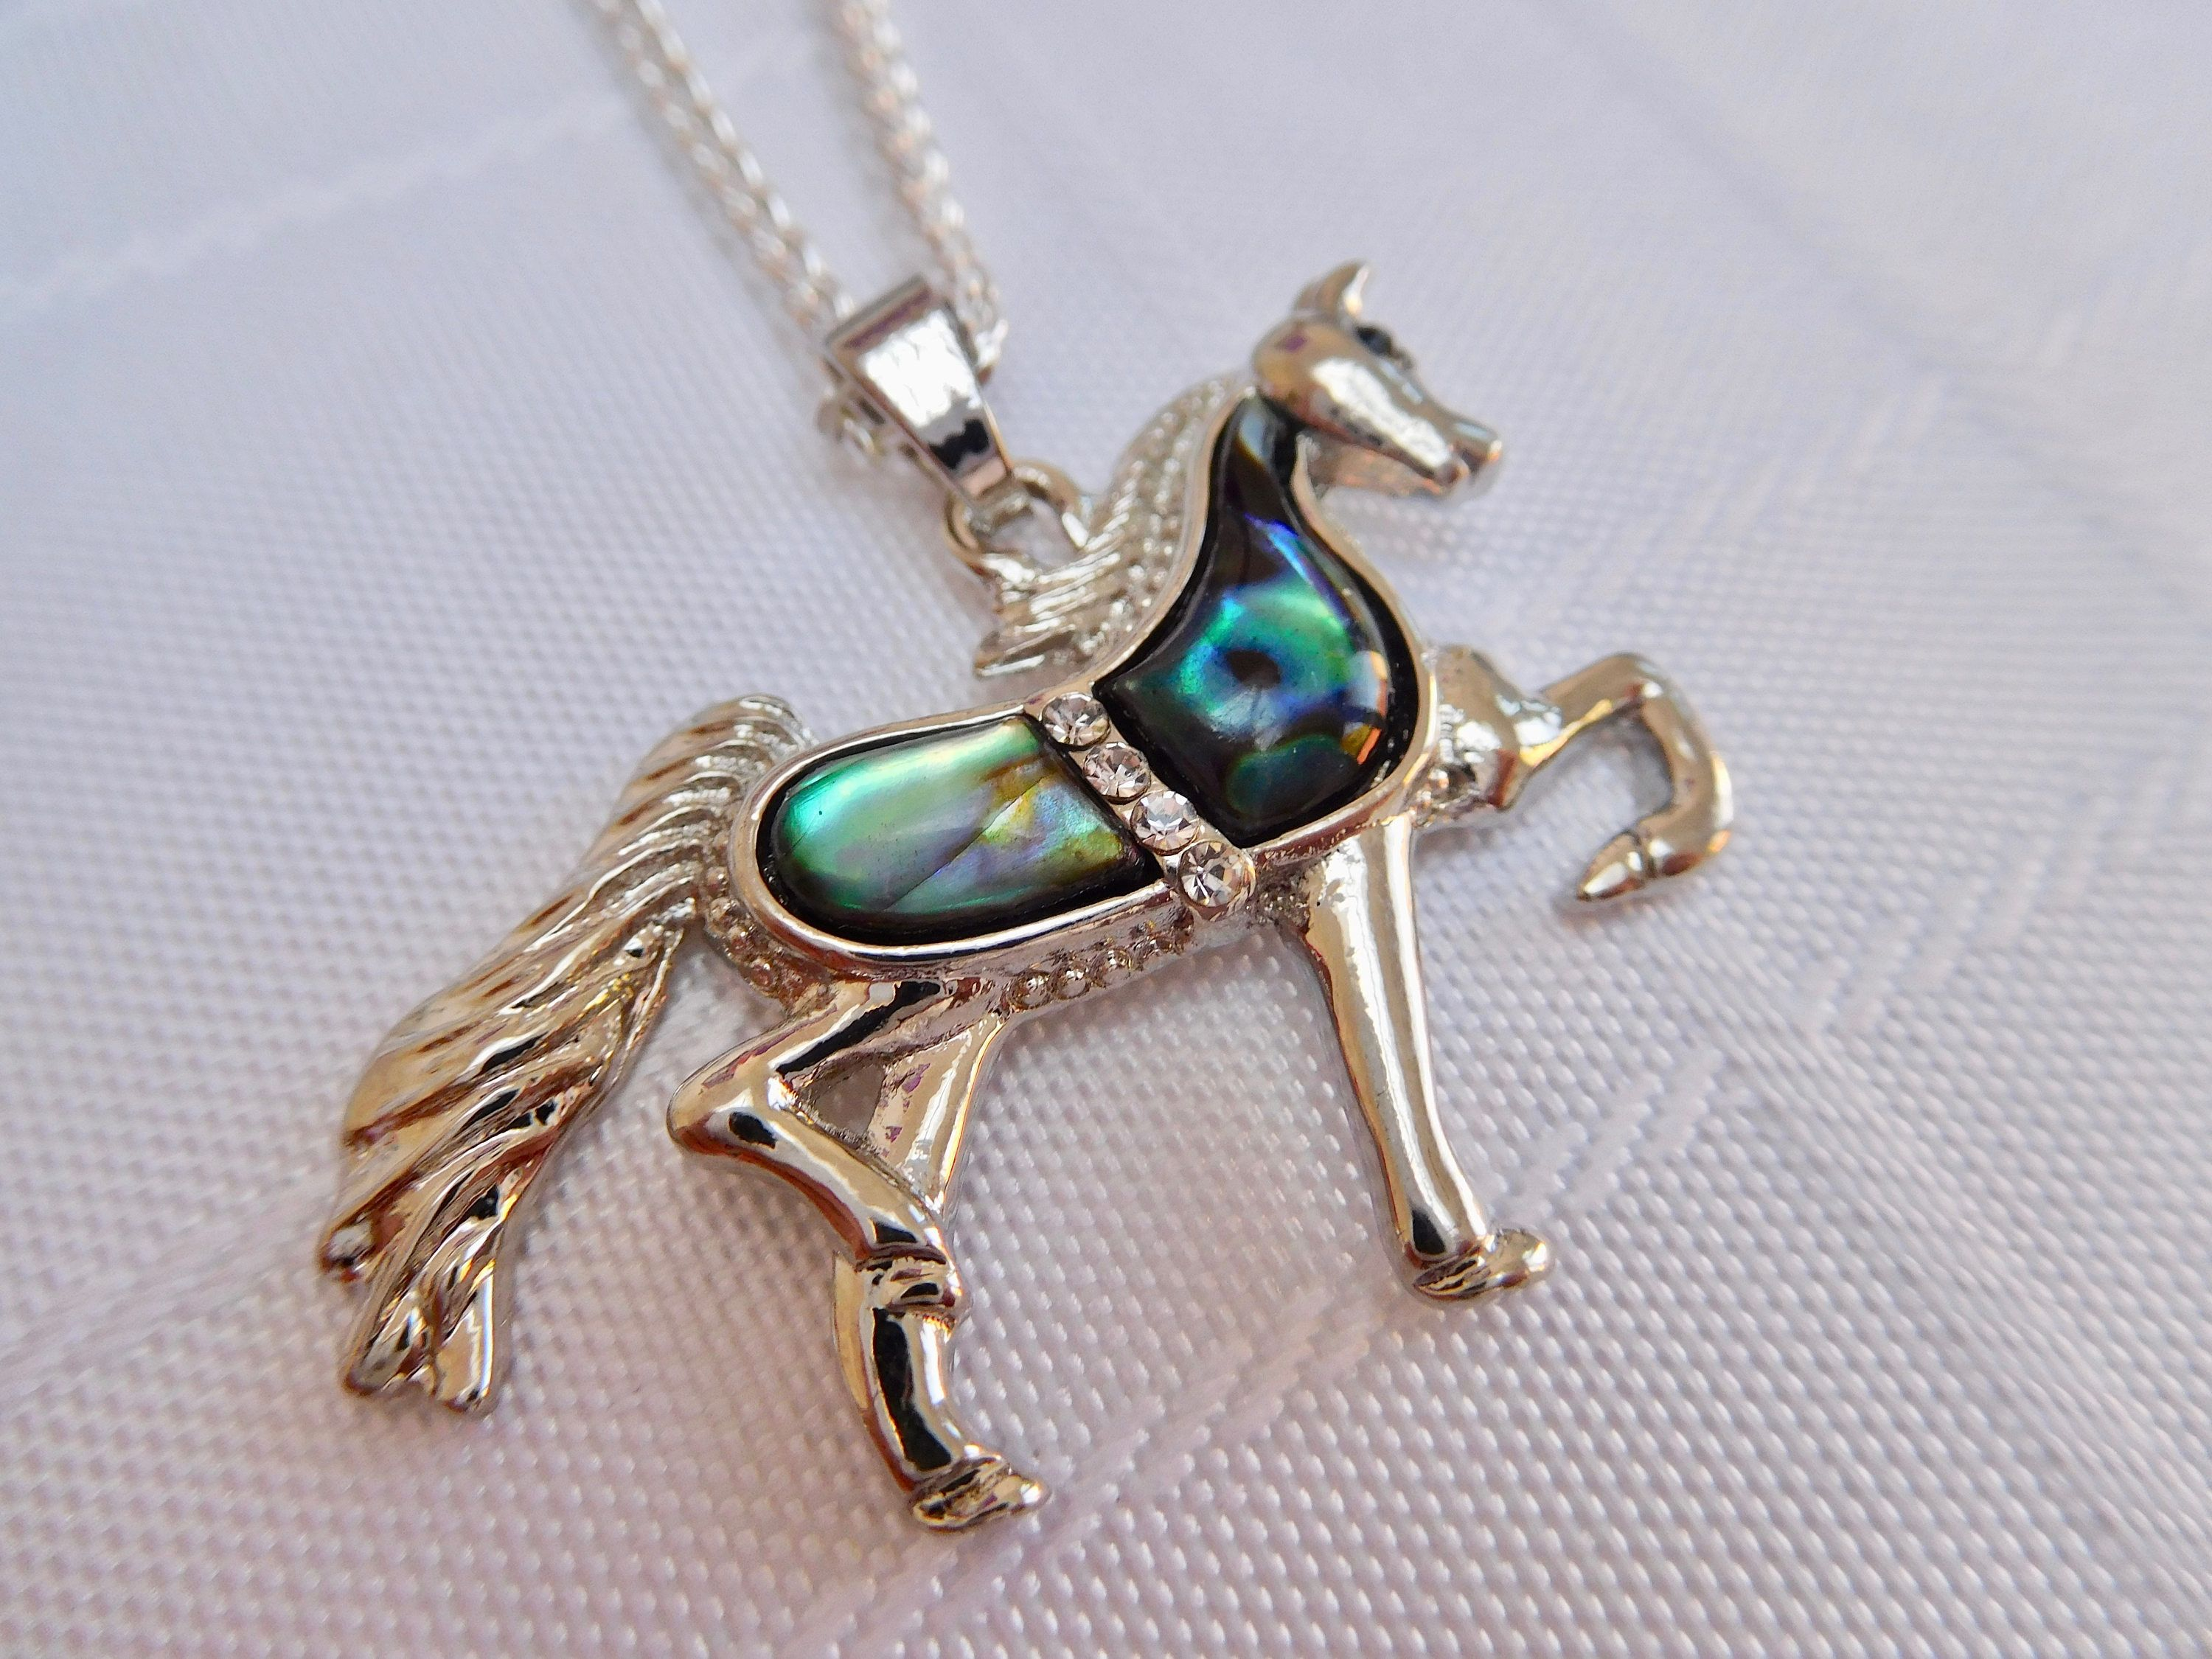 friends necklace products bracelets horses horse best prancing rearing and charm bangles